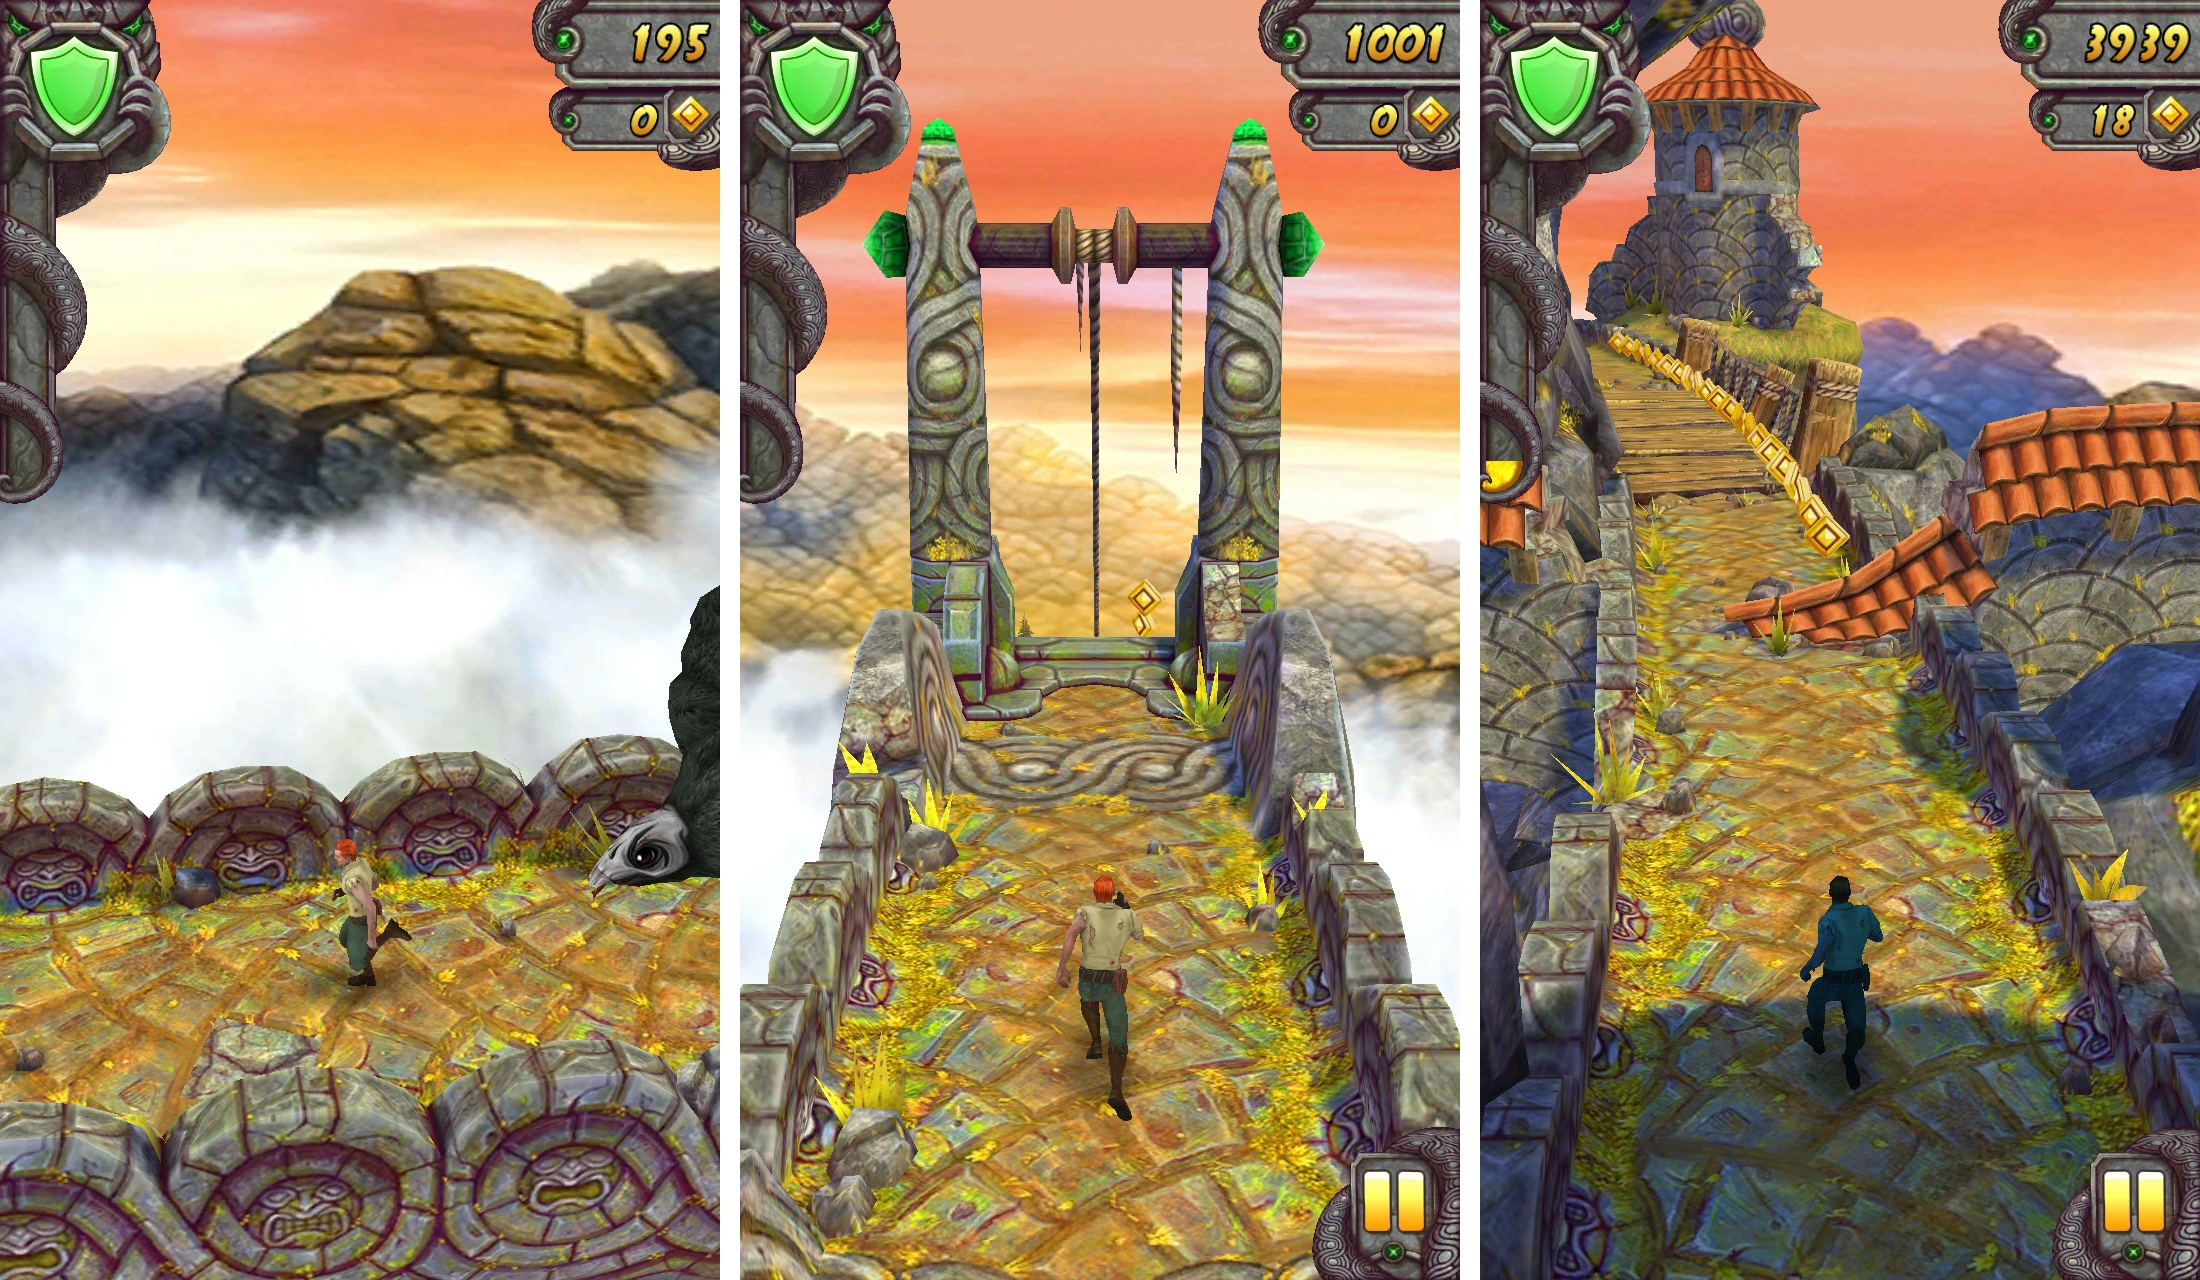 temple run 2 best free iphone game - 5 Best Free iPhone Games